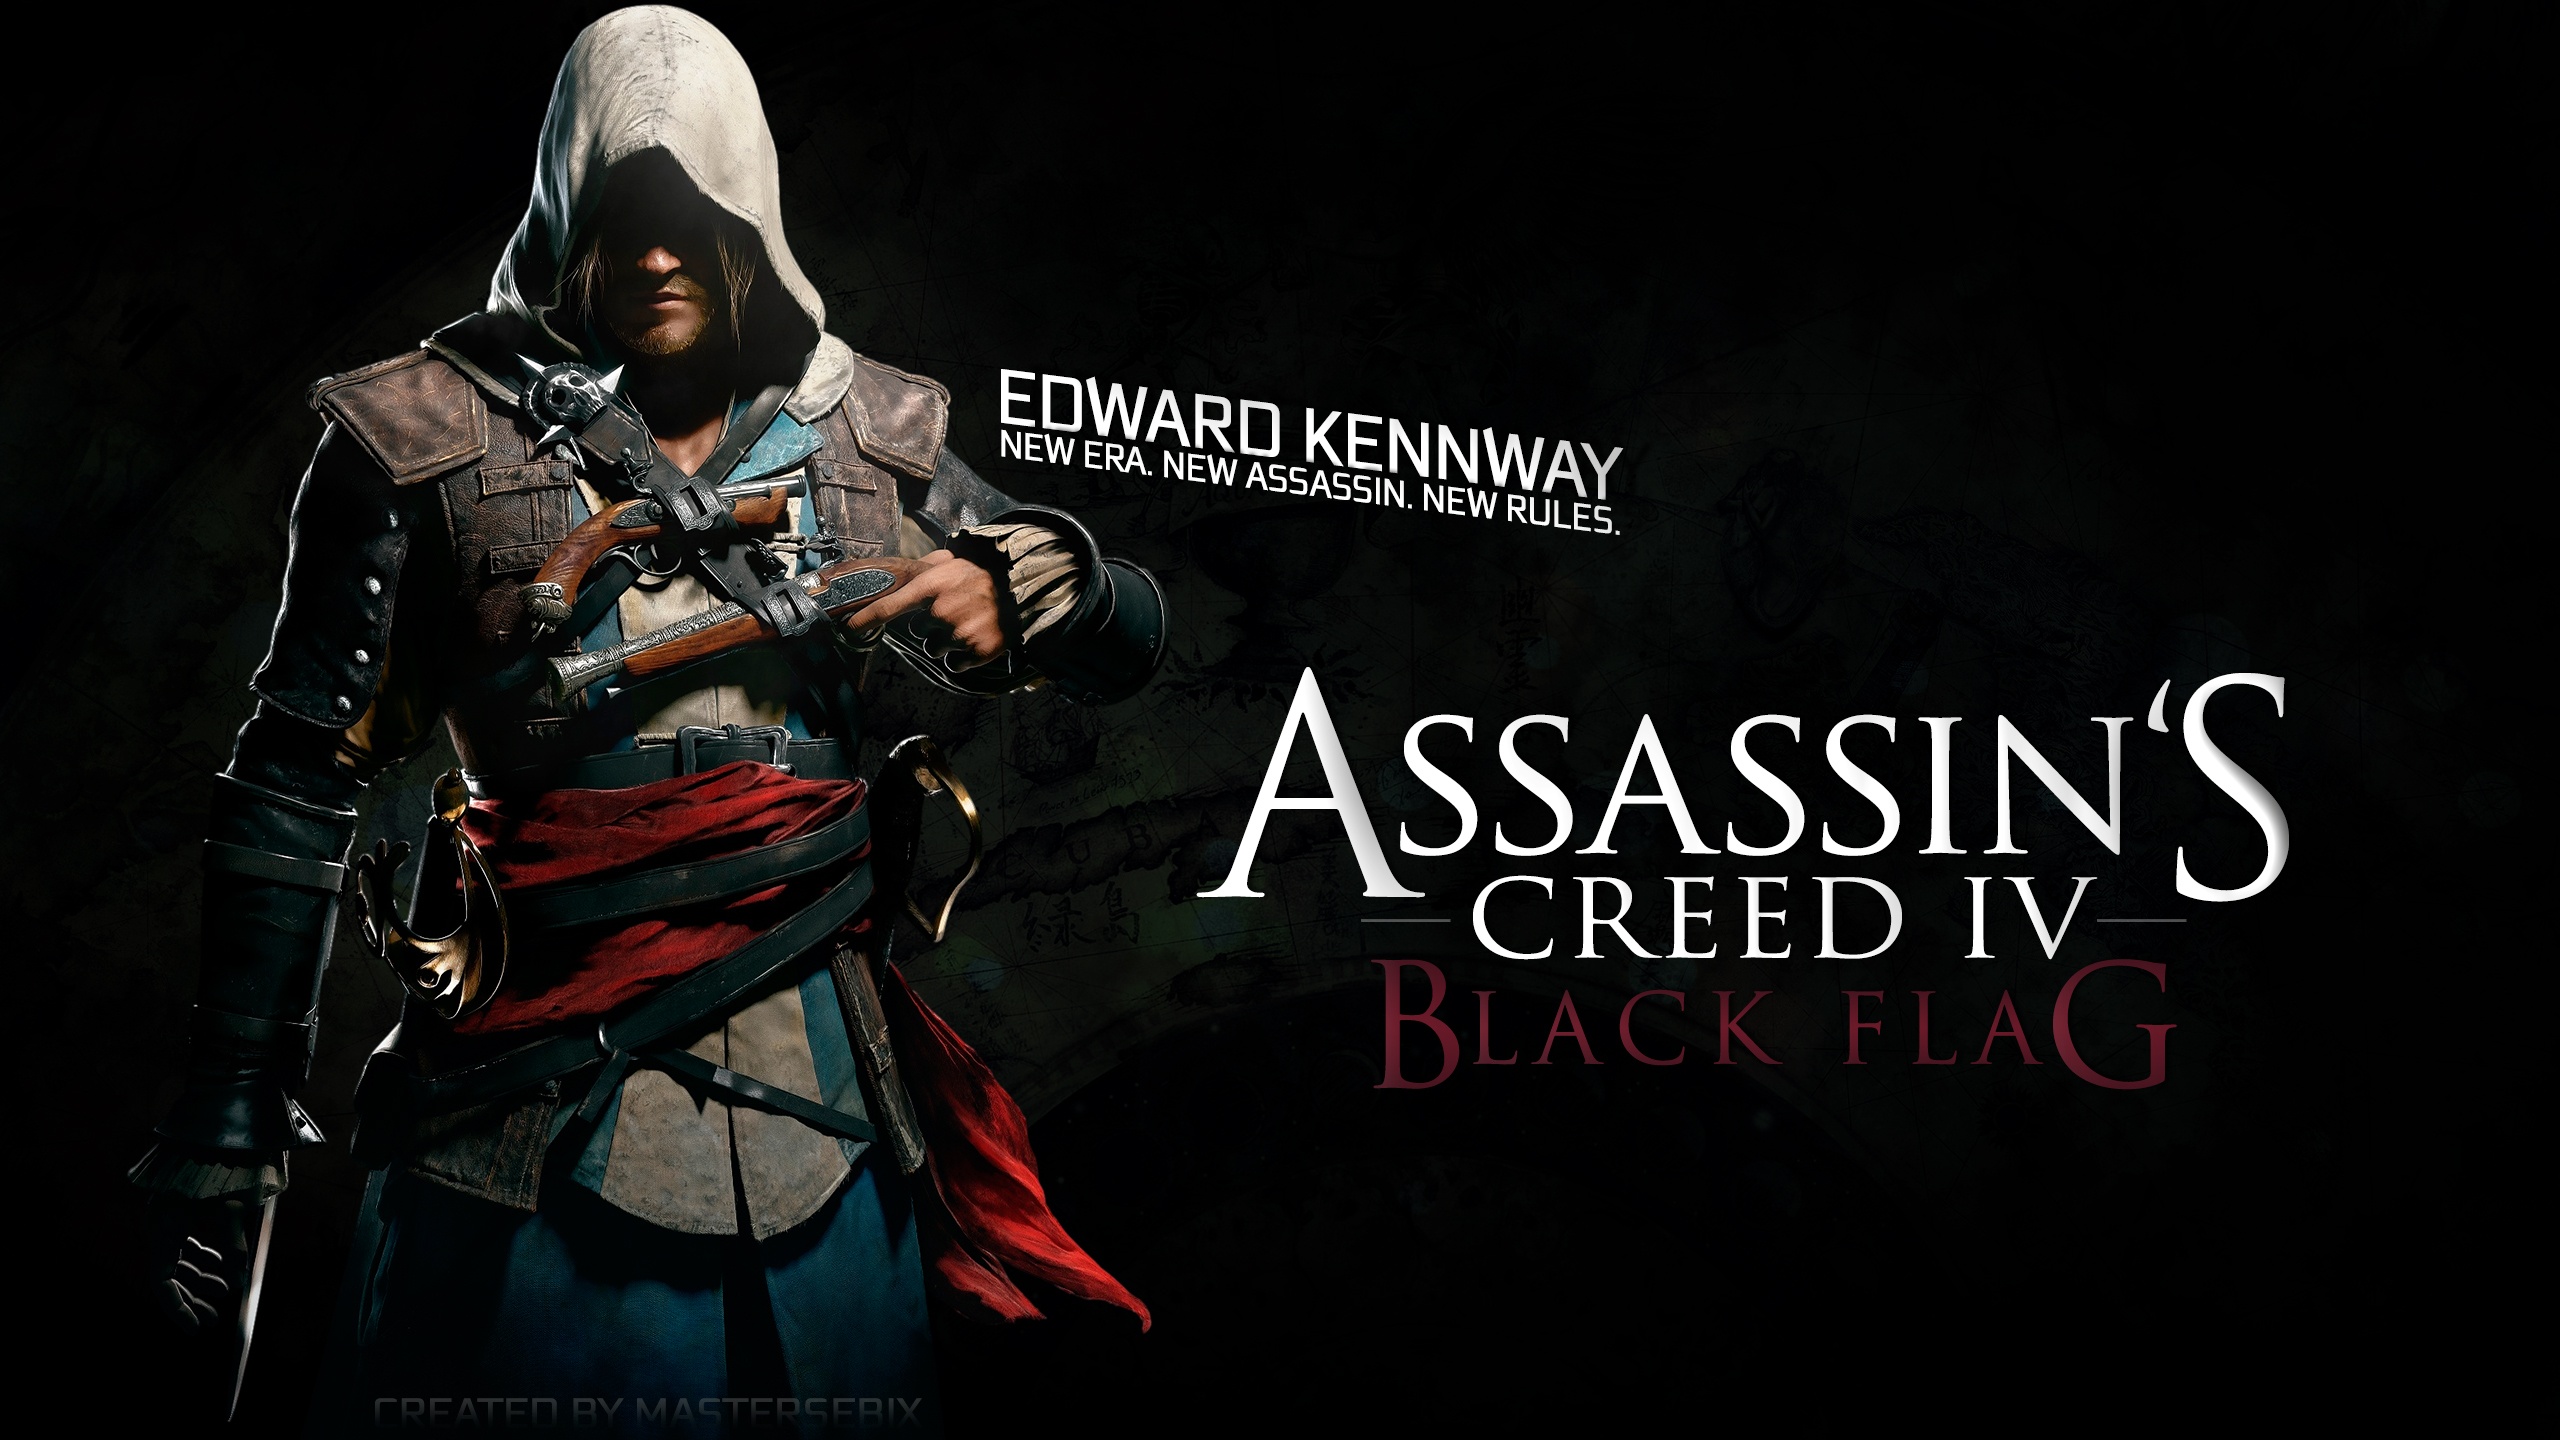 Assassin's Creed 4 Coming To PC This November + Wii U Version Delayed